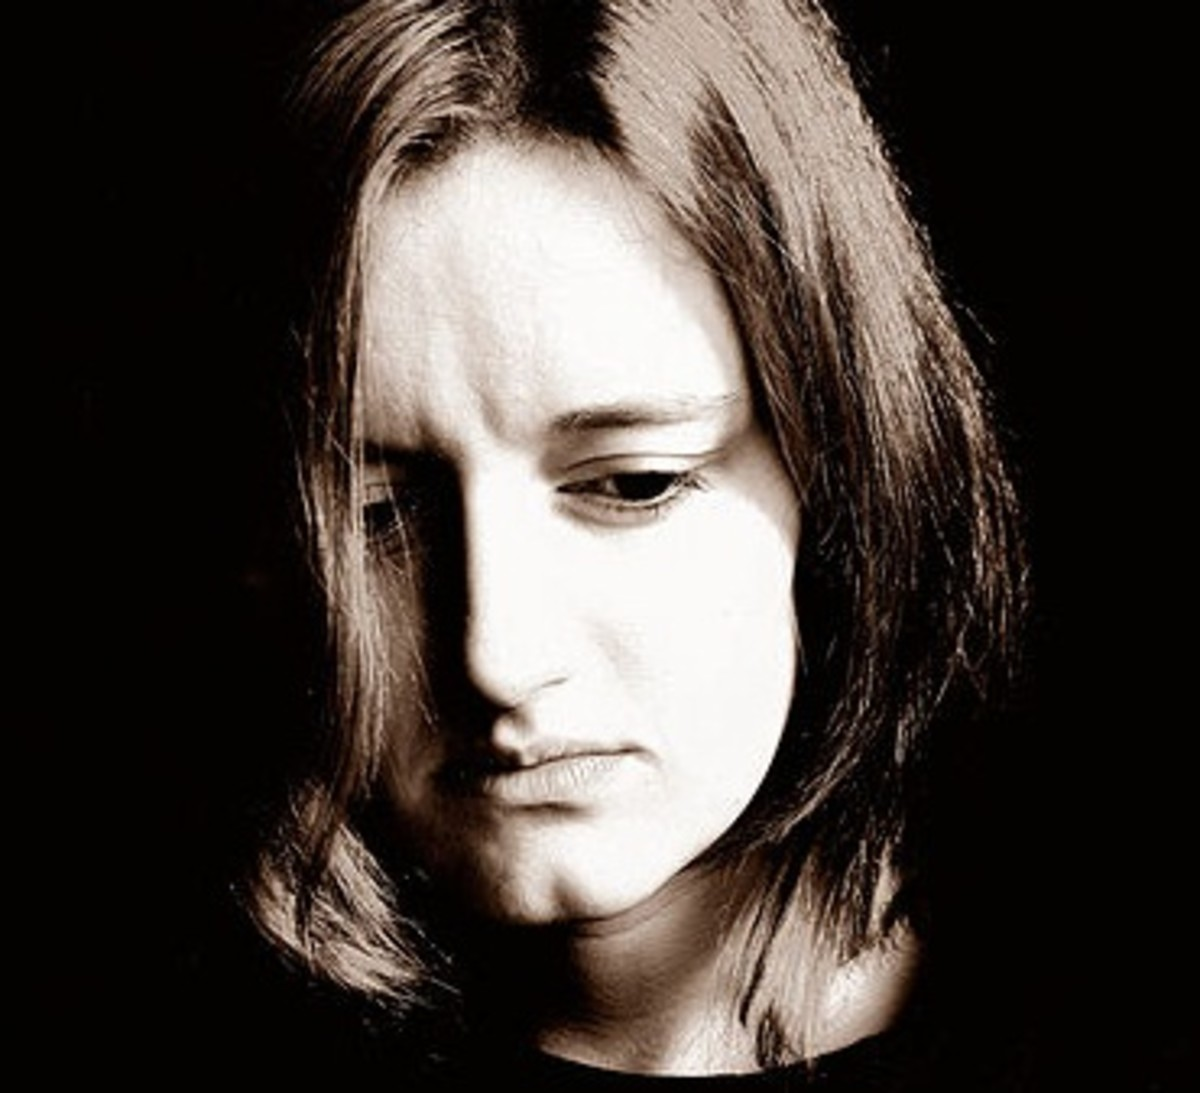 There are many causes of depression that can be alleviated with religious belief.